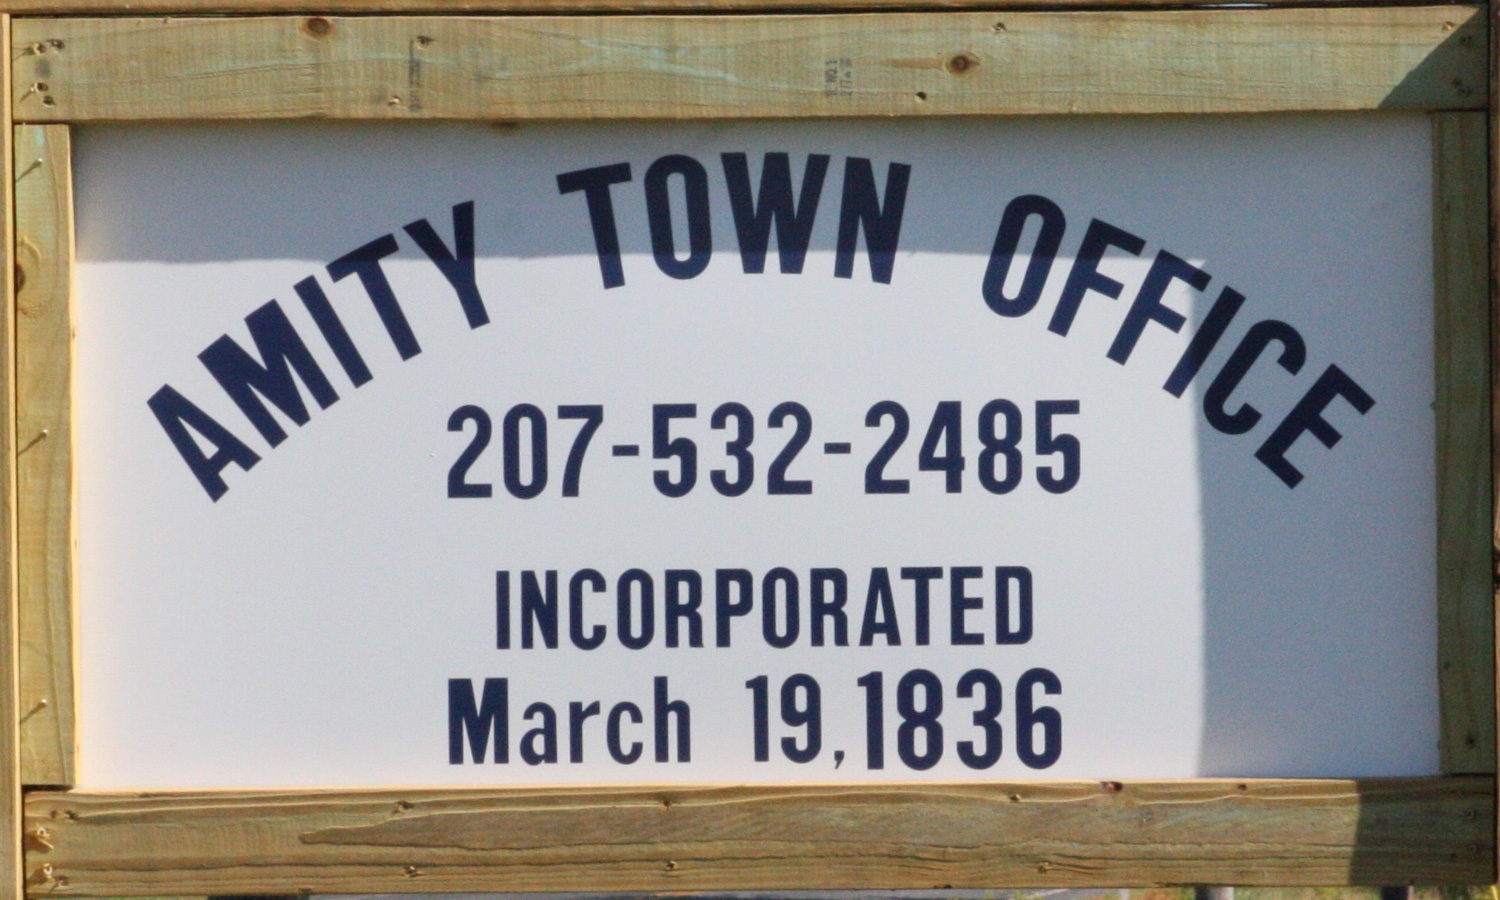 Amity New Town Office Sign